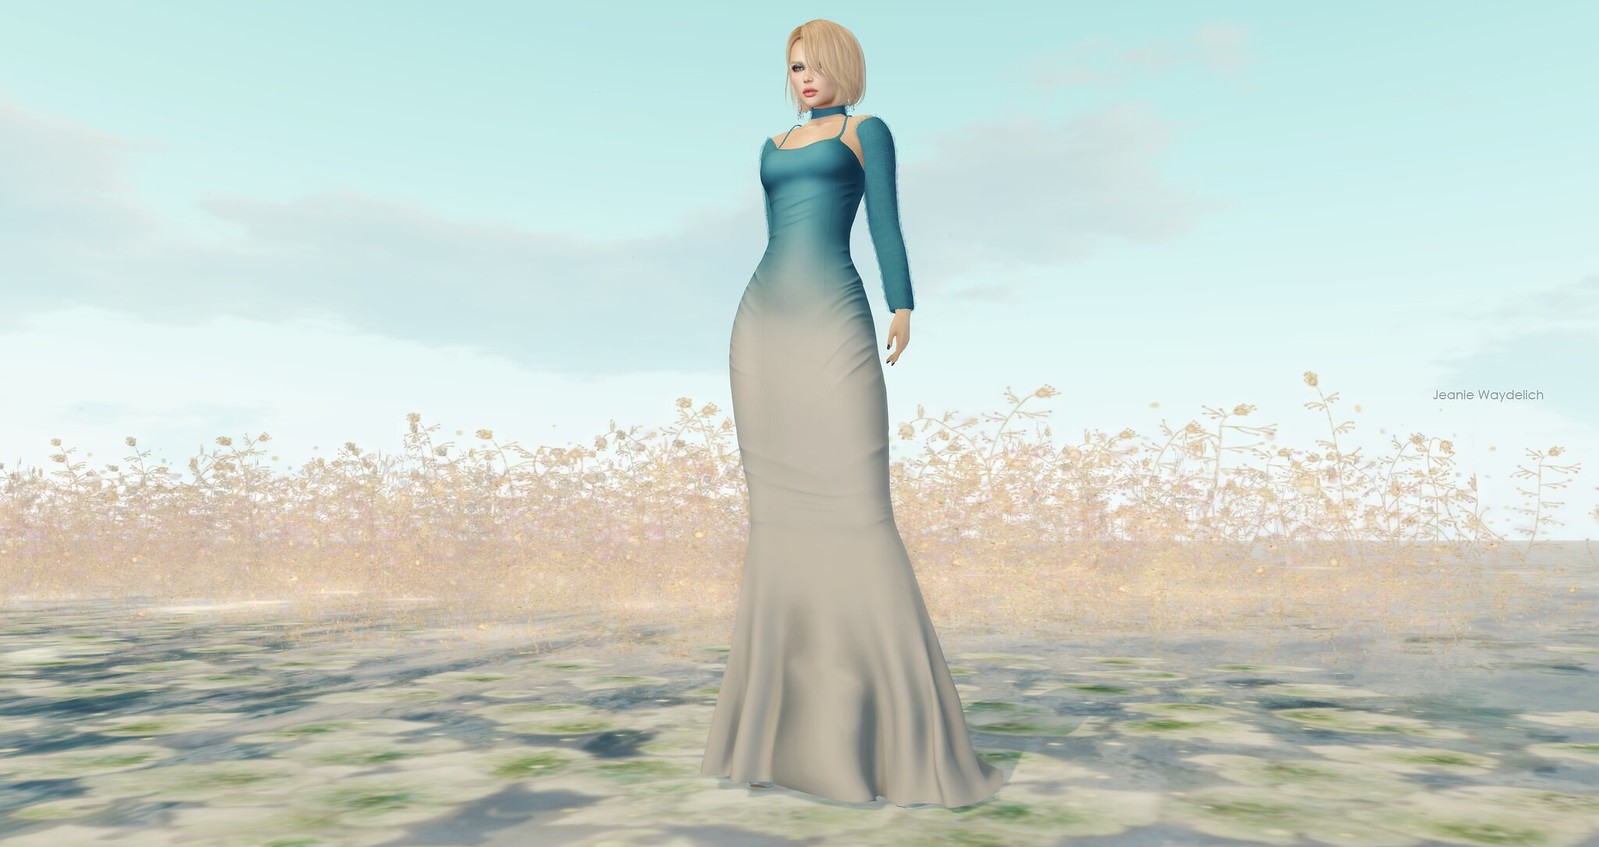 LOTD 921 - In search of tranquility